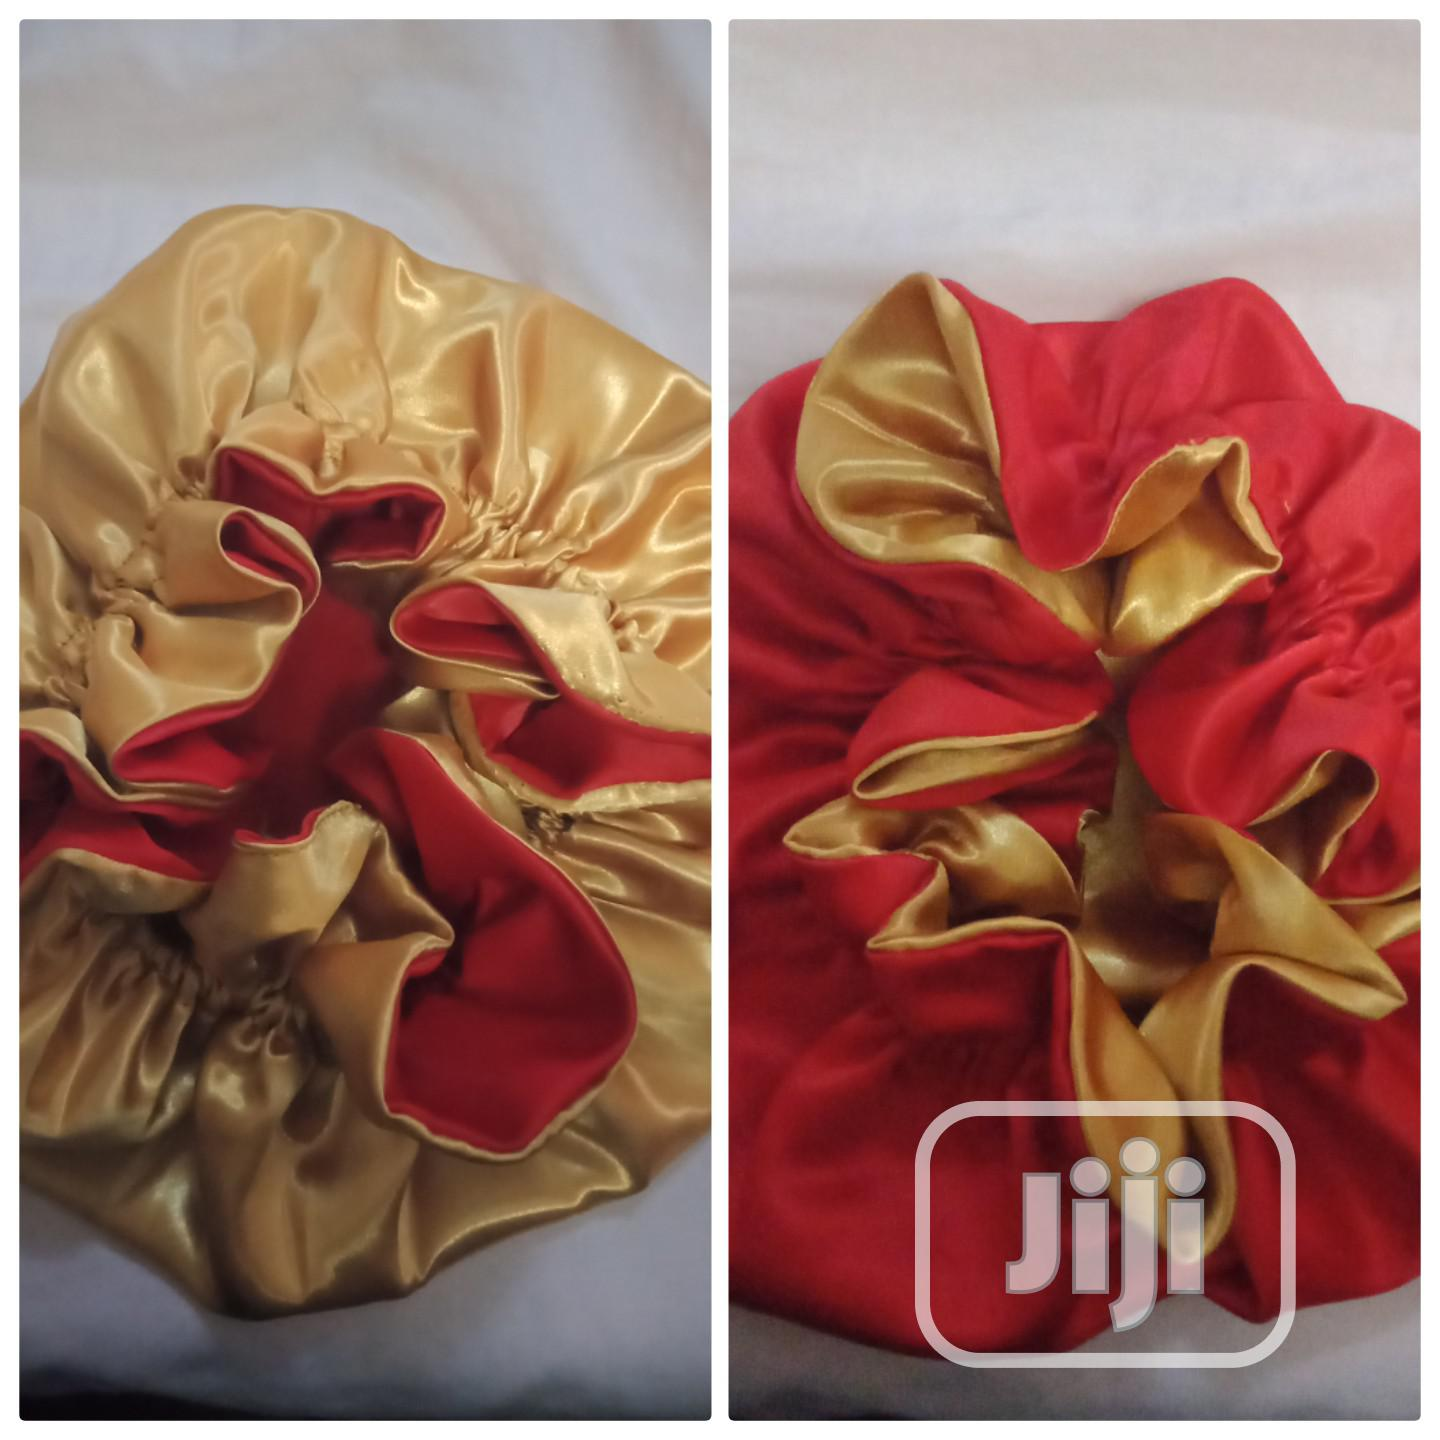 Reversible Satin Hair Bonnet | Clothing Accessories for sale in Maitama, Abuja (FCT) State, Nigeria